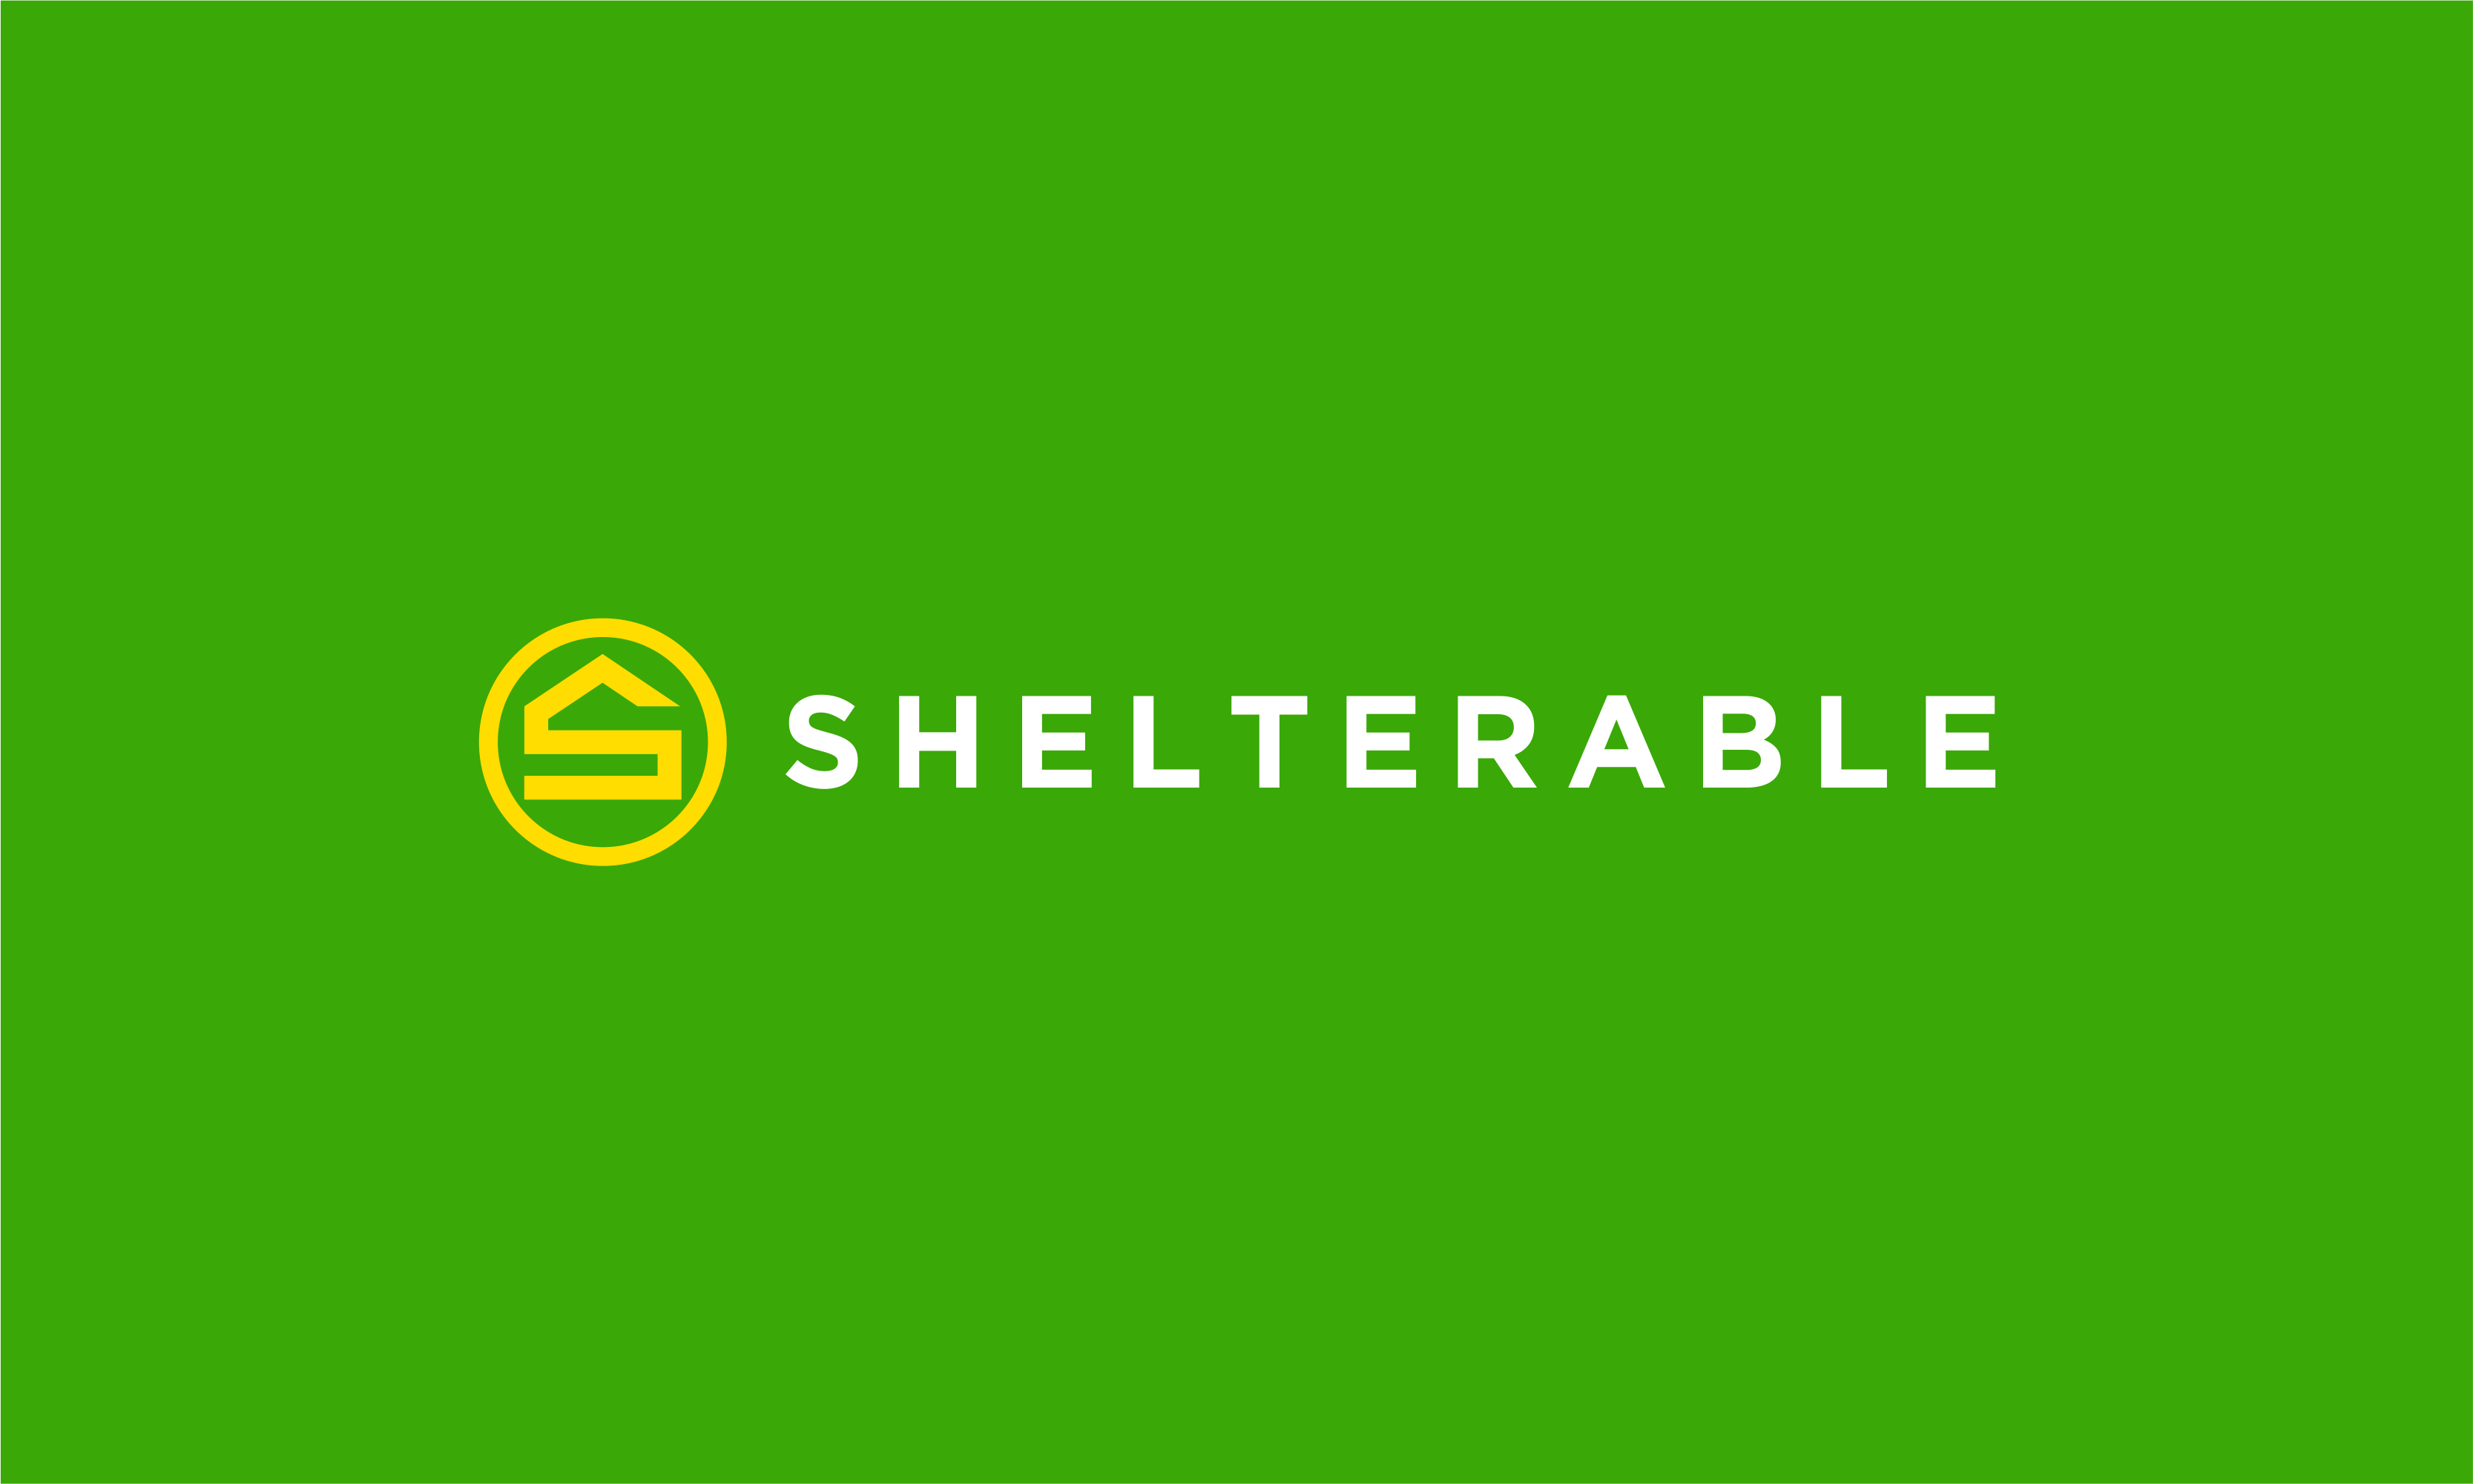 Shelterable